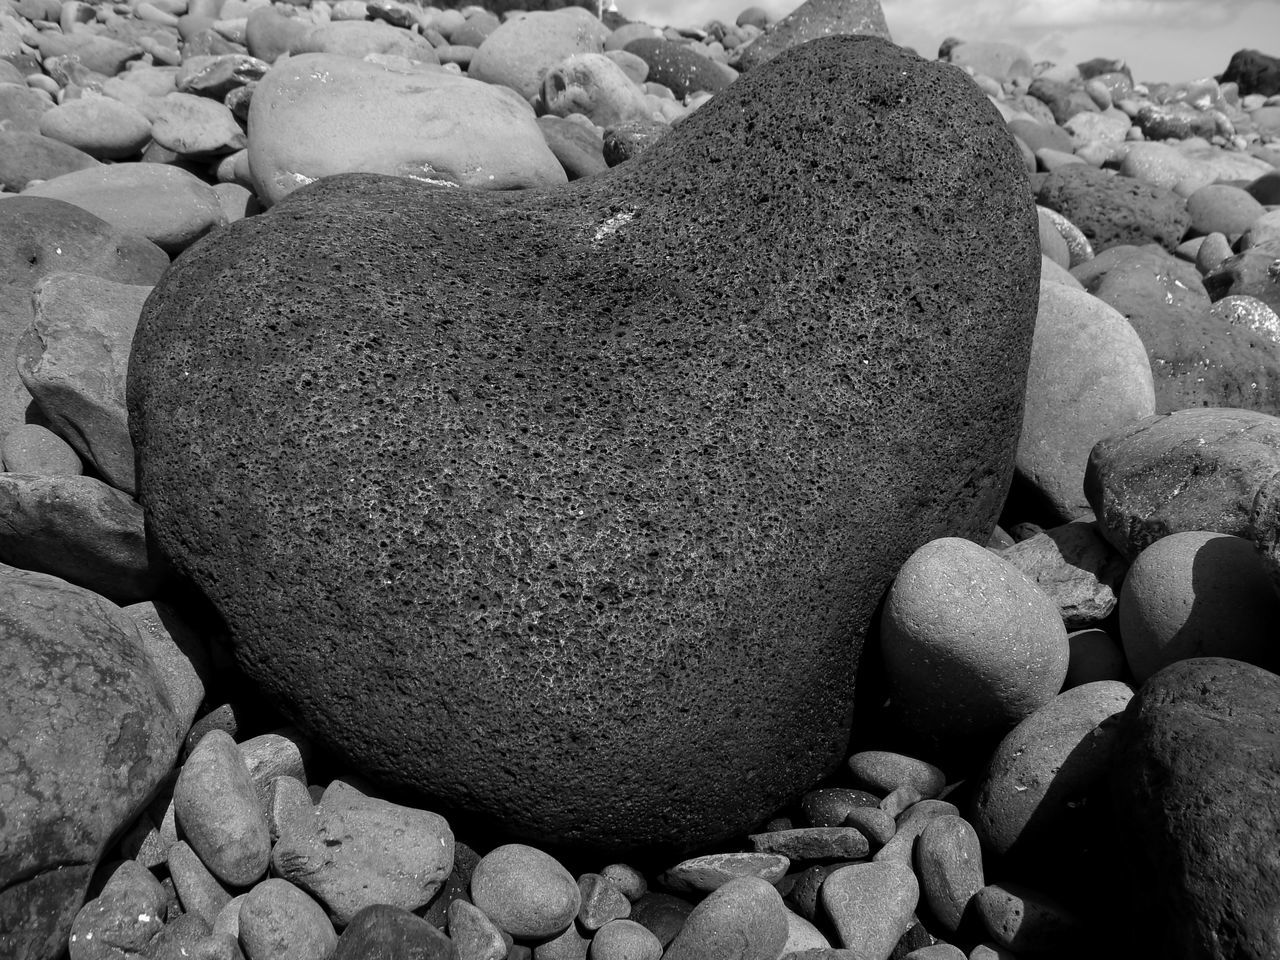 Heart shaped pebble on the beach of Canico on the island of Madeira. Beach Black Black And White Close-up Day Heart Shape Heart ❤ Lonely Heart Nature No People Outdoors Pebble Pebbles On A Beach Round Shape Stone - Object